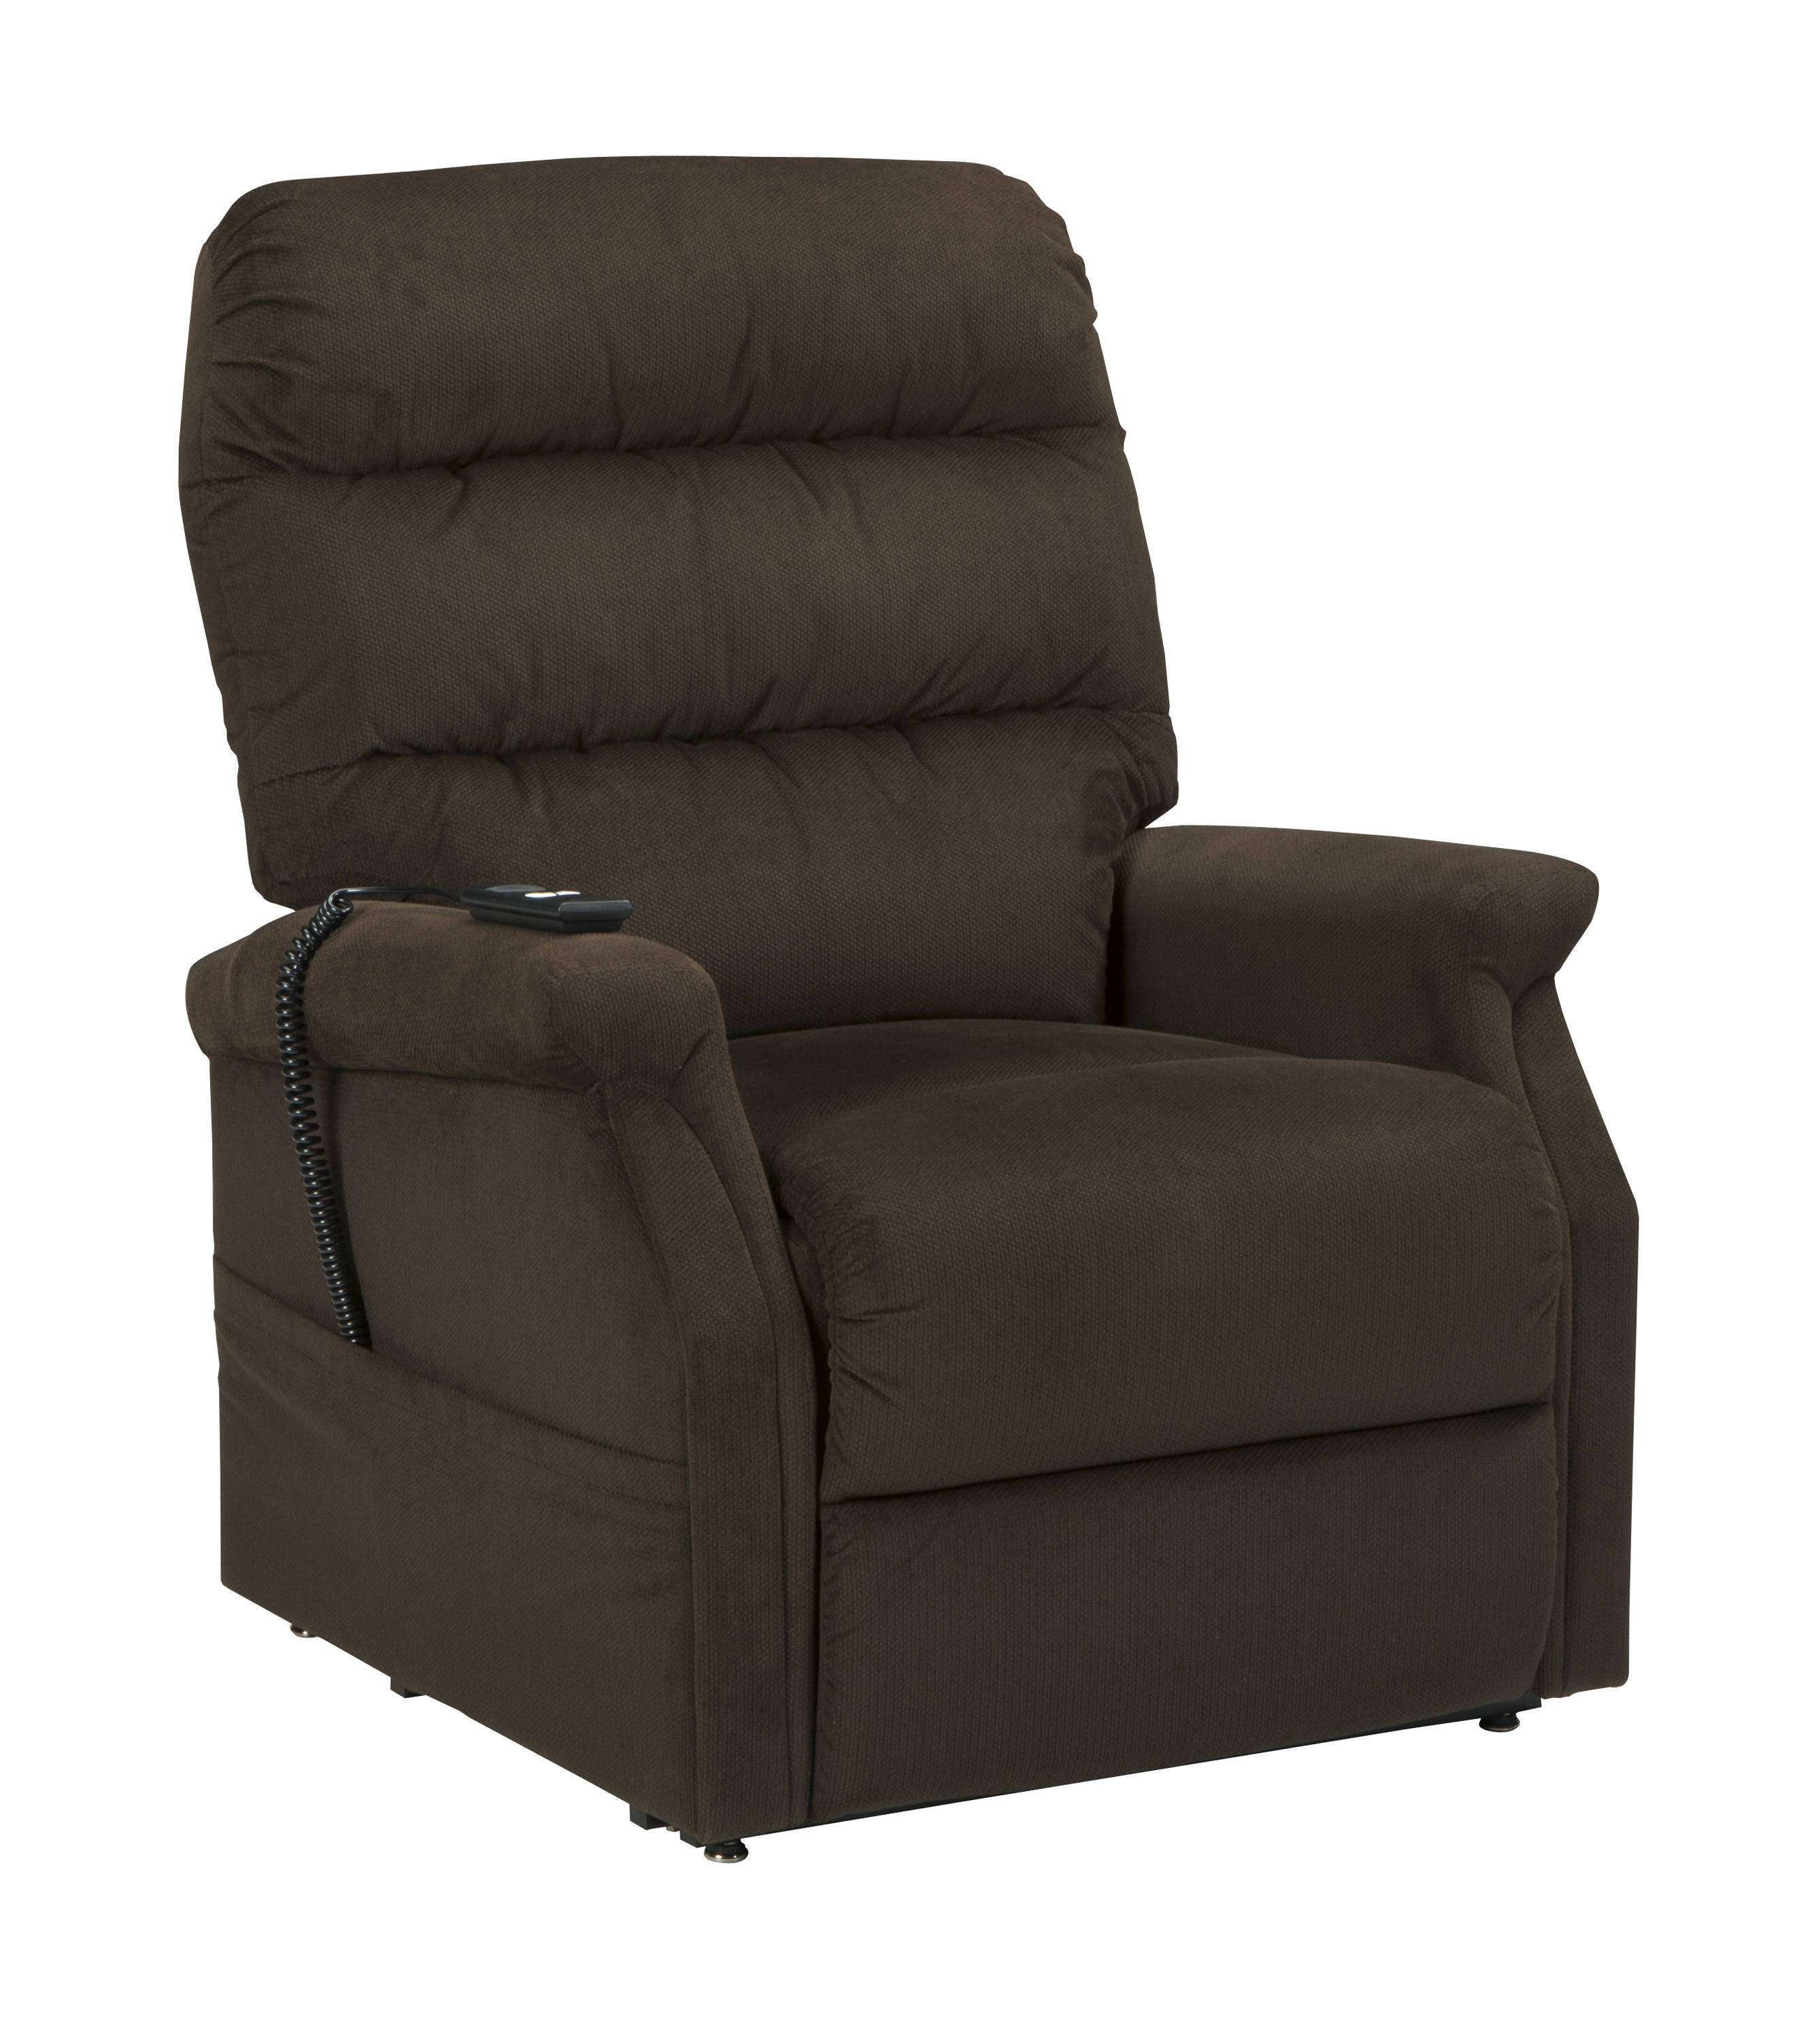 Ashley Furniture Outlet Las Vegas: Ashley Furniture Brenyth Chocolate Power Lift Recliner